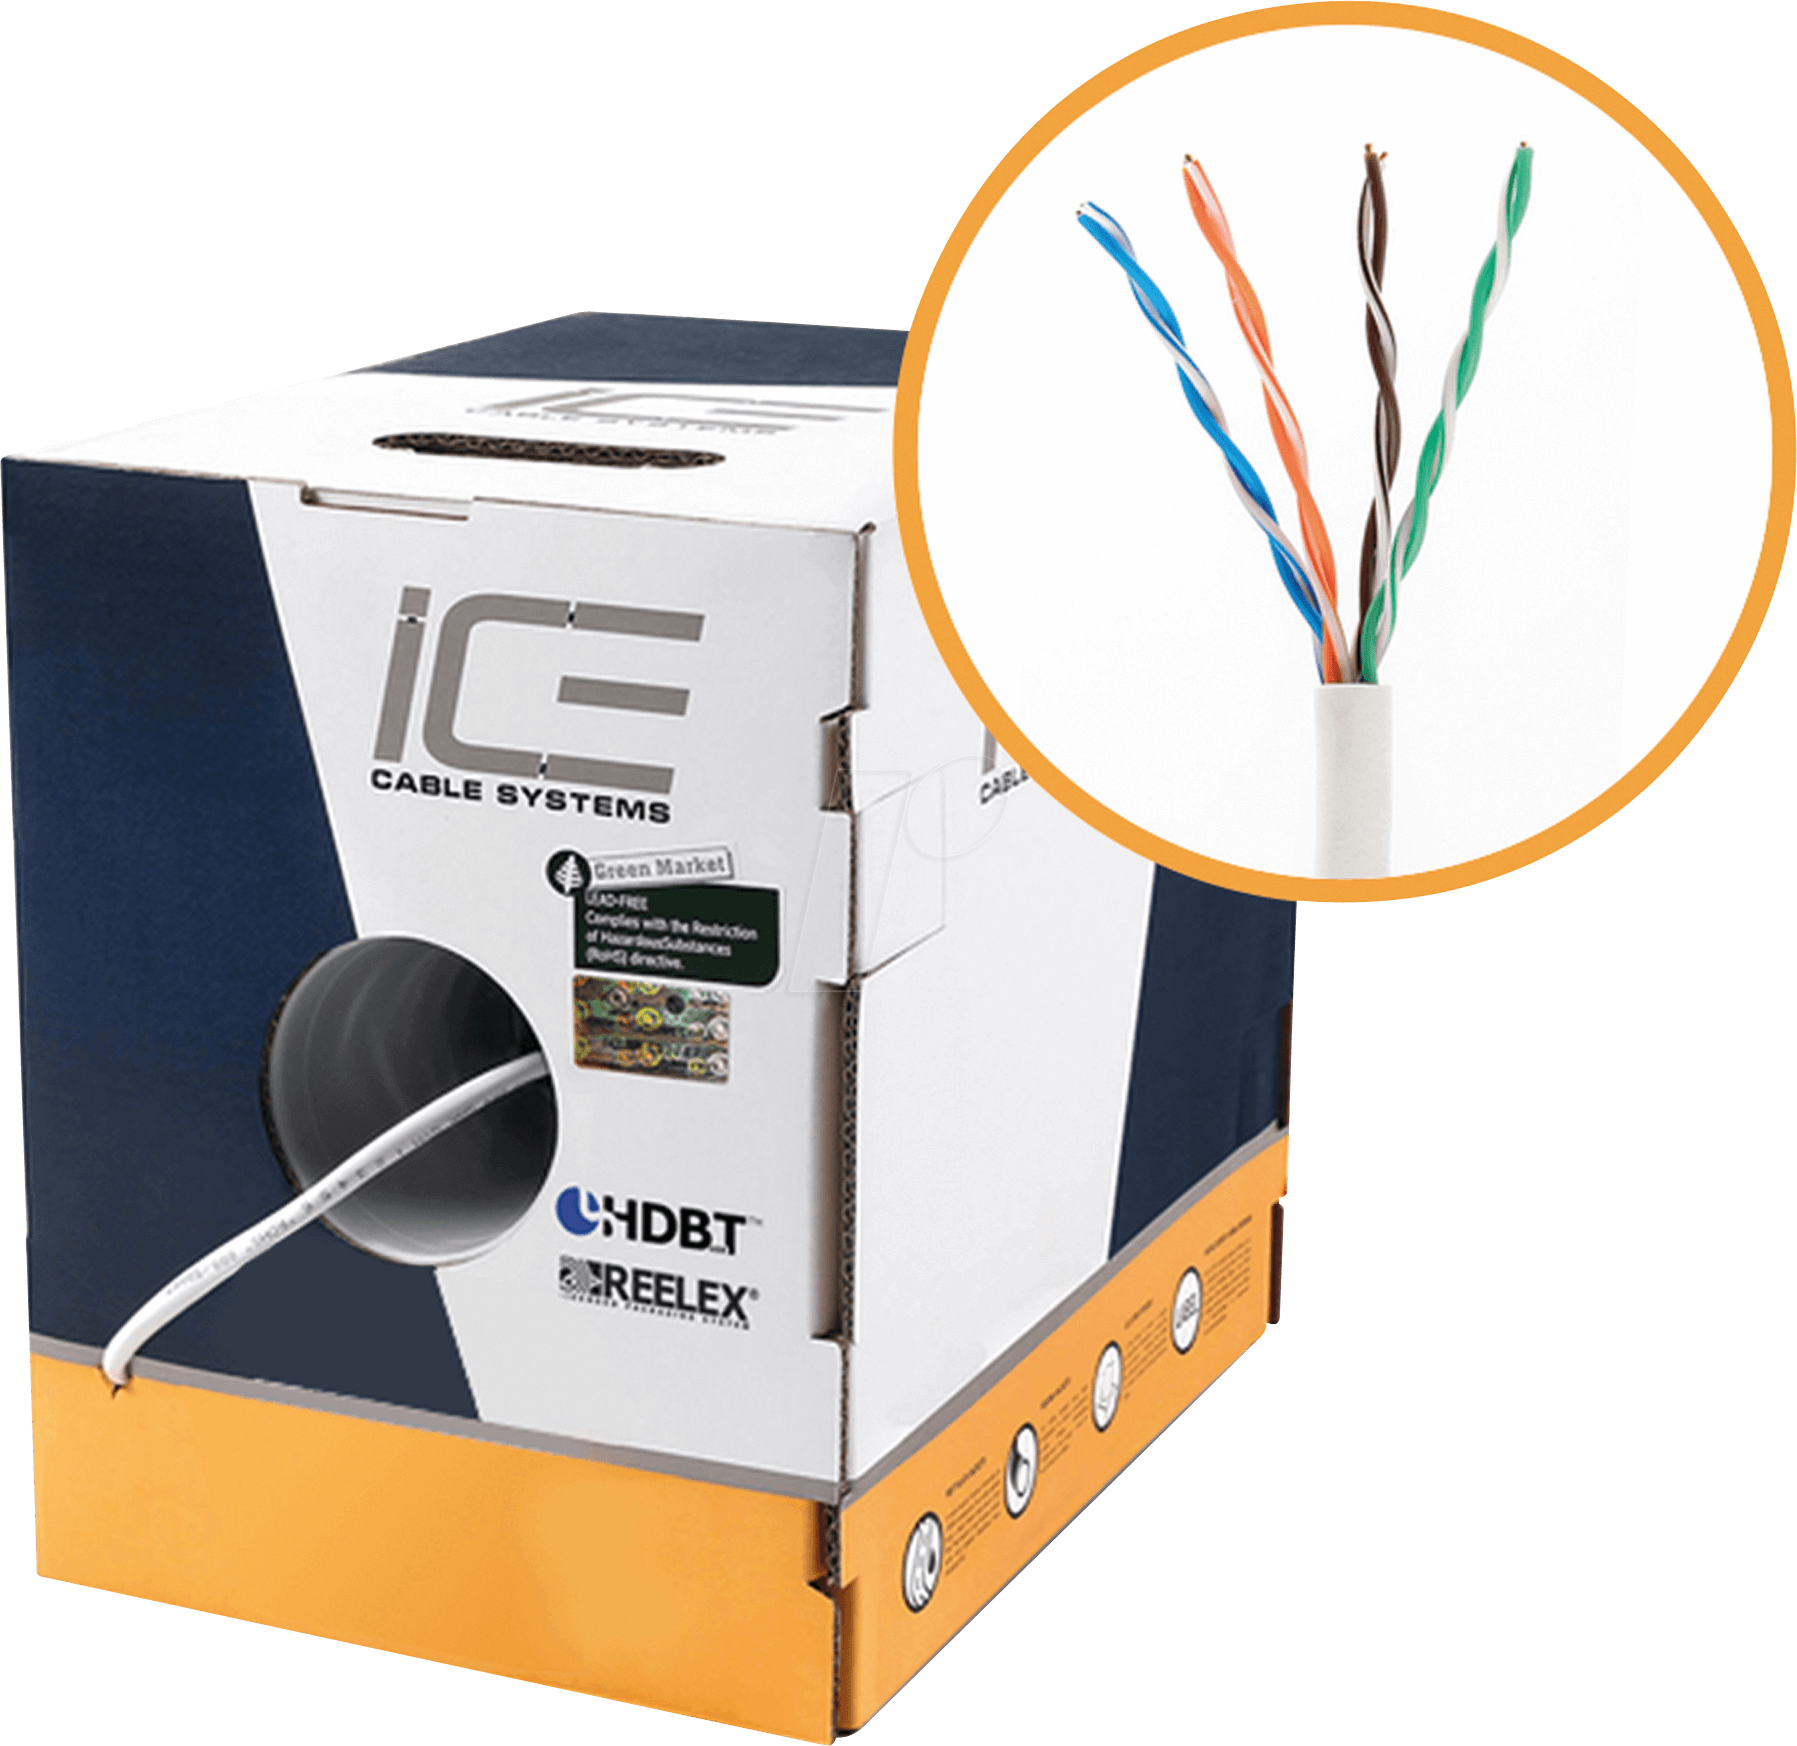 Ice Cat5e Bl Cable Utp 24awg 305m At Reichelt Elektronik Cat 5e Wiring